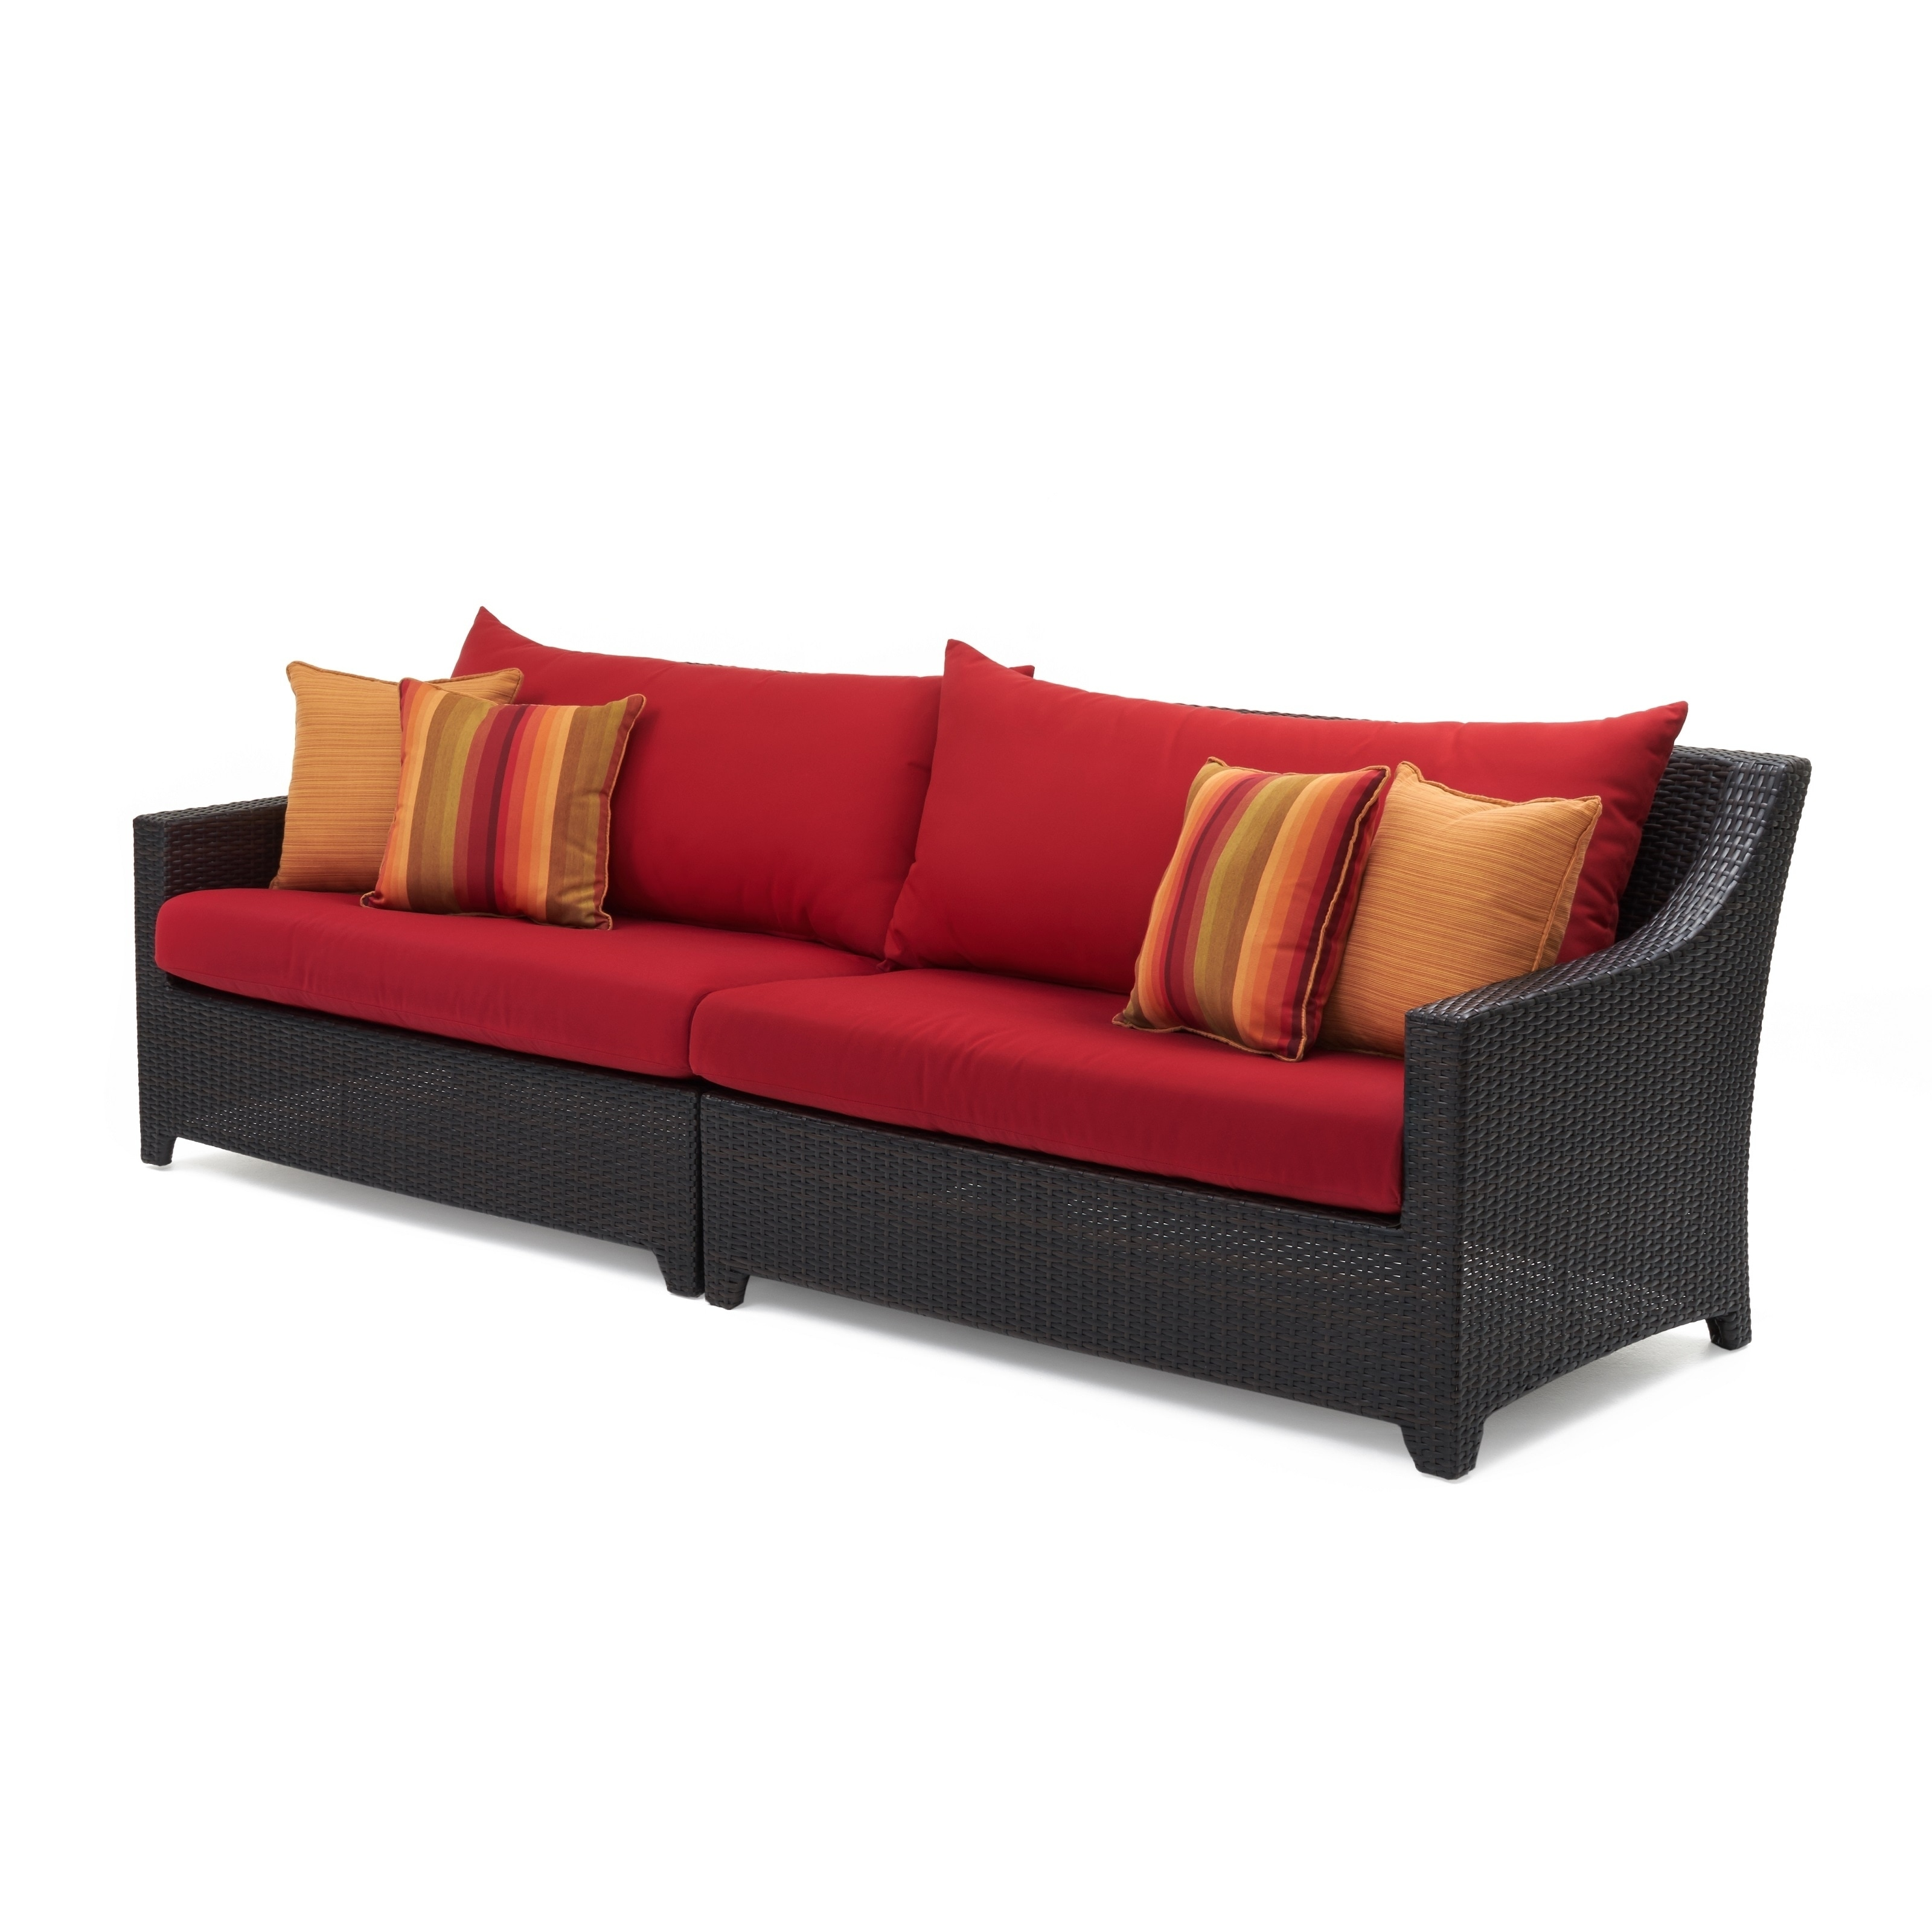 Deco Sofa In Sunset Red By Rst Brands Free Shipping Today 13330085